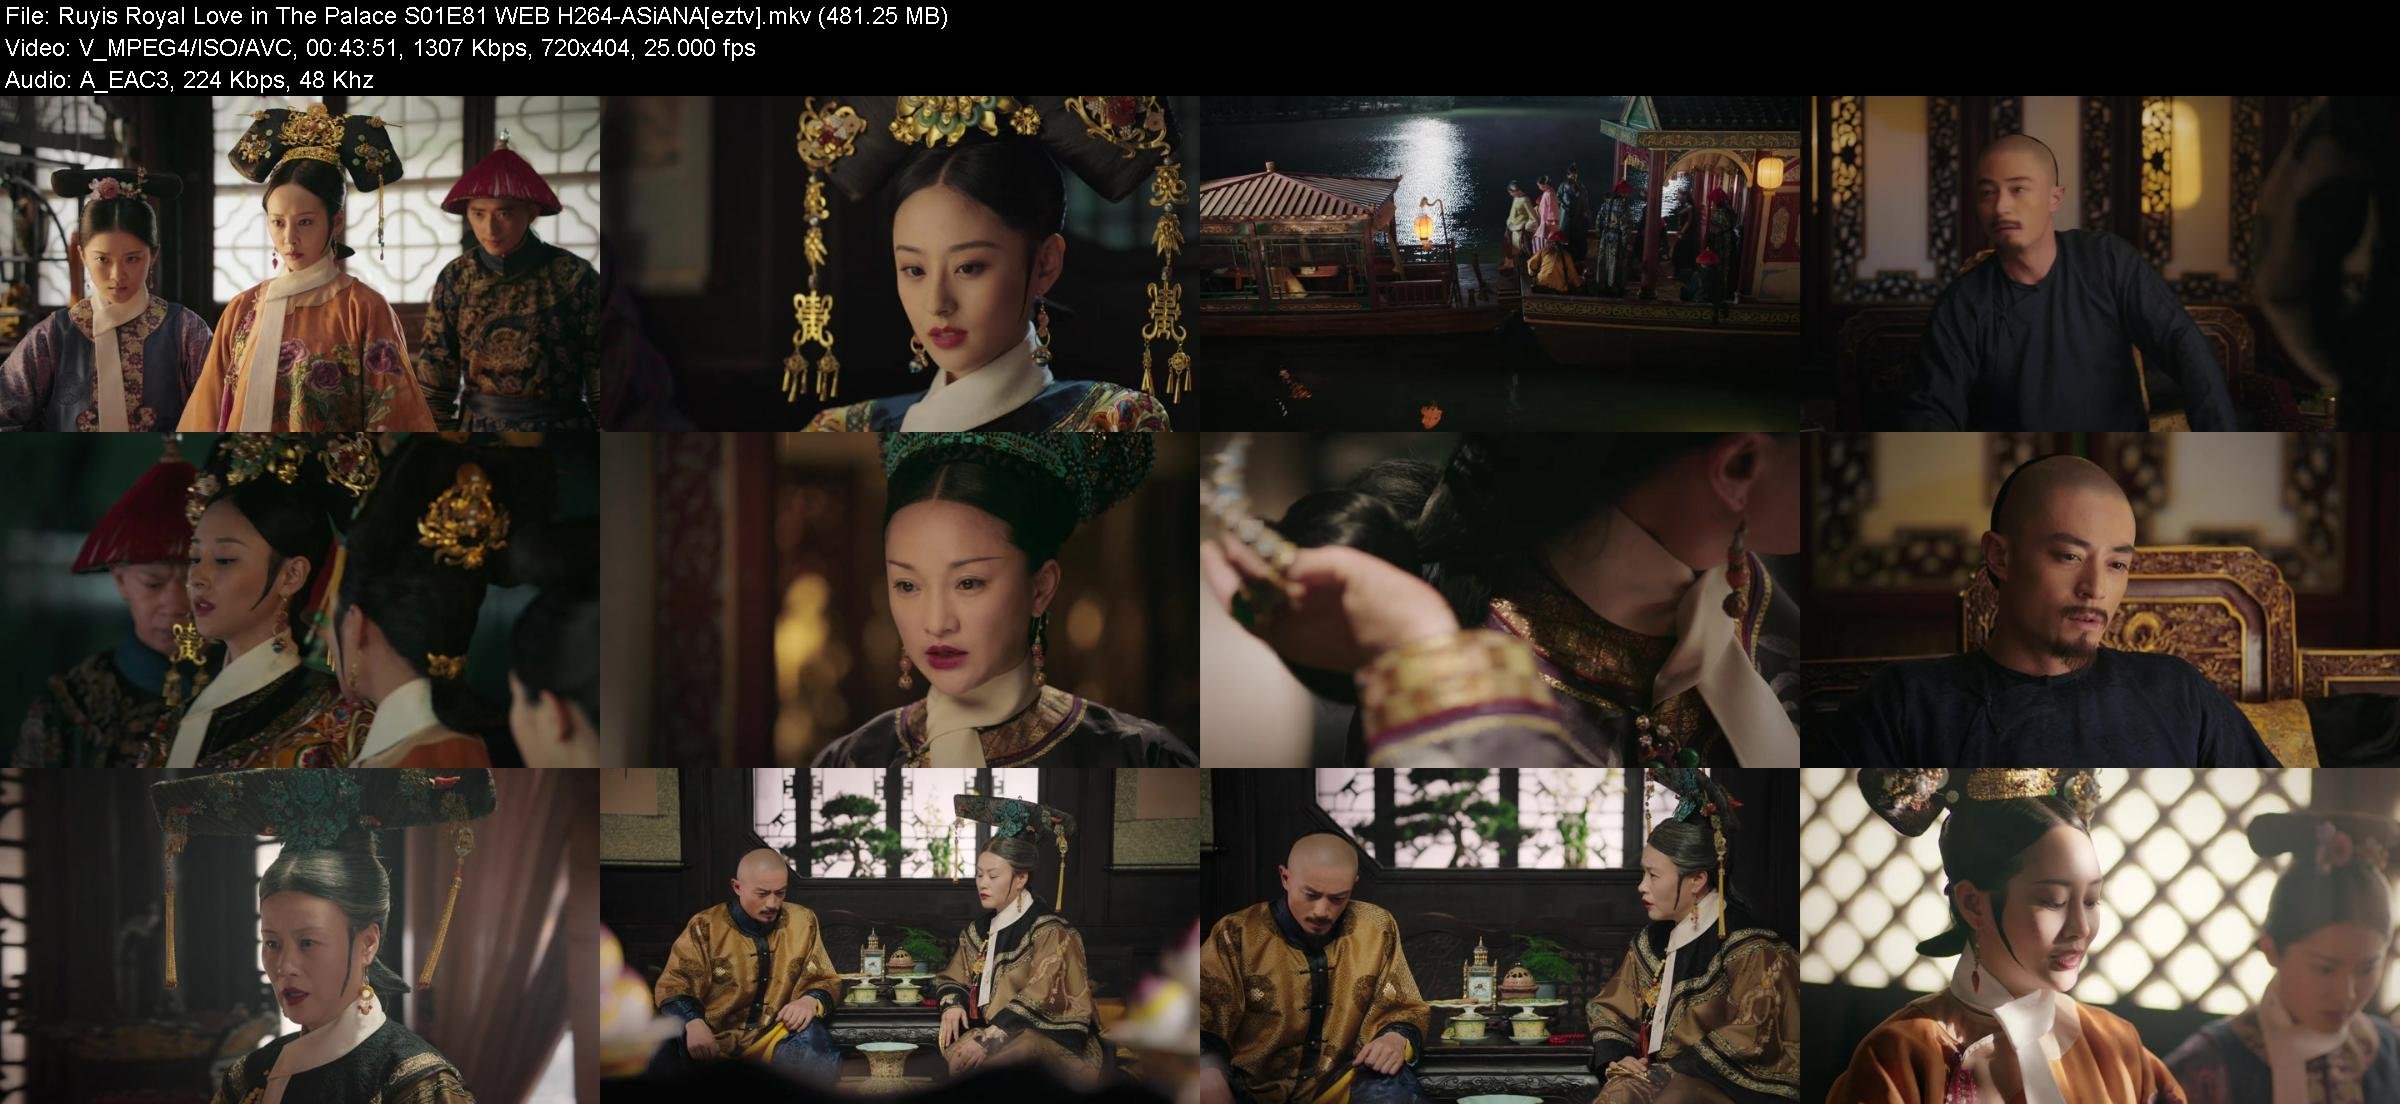 Ruyis Royal Love in The Palace S01E81 WEB H264-ASiANA